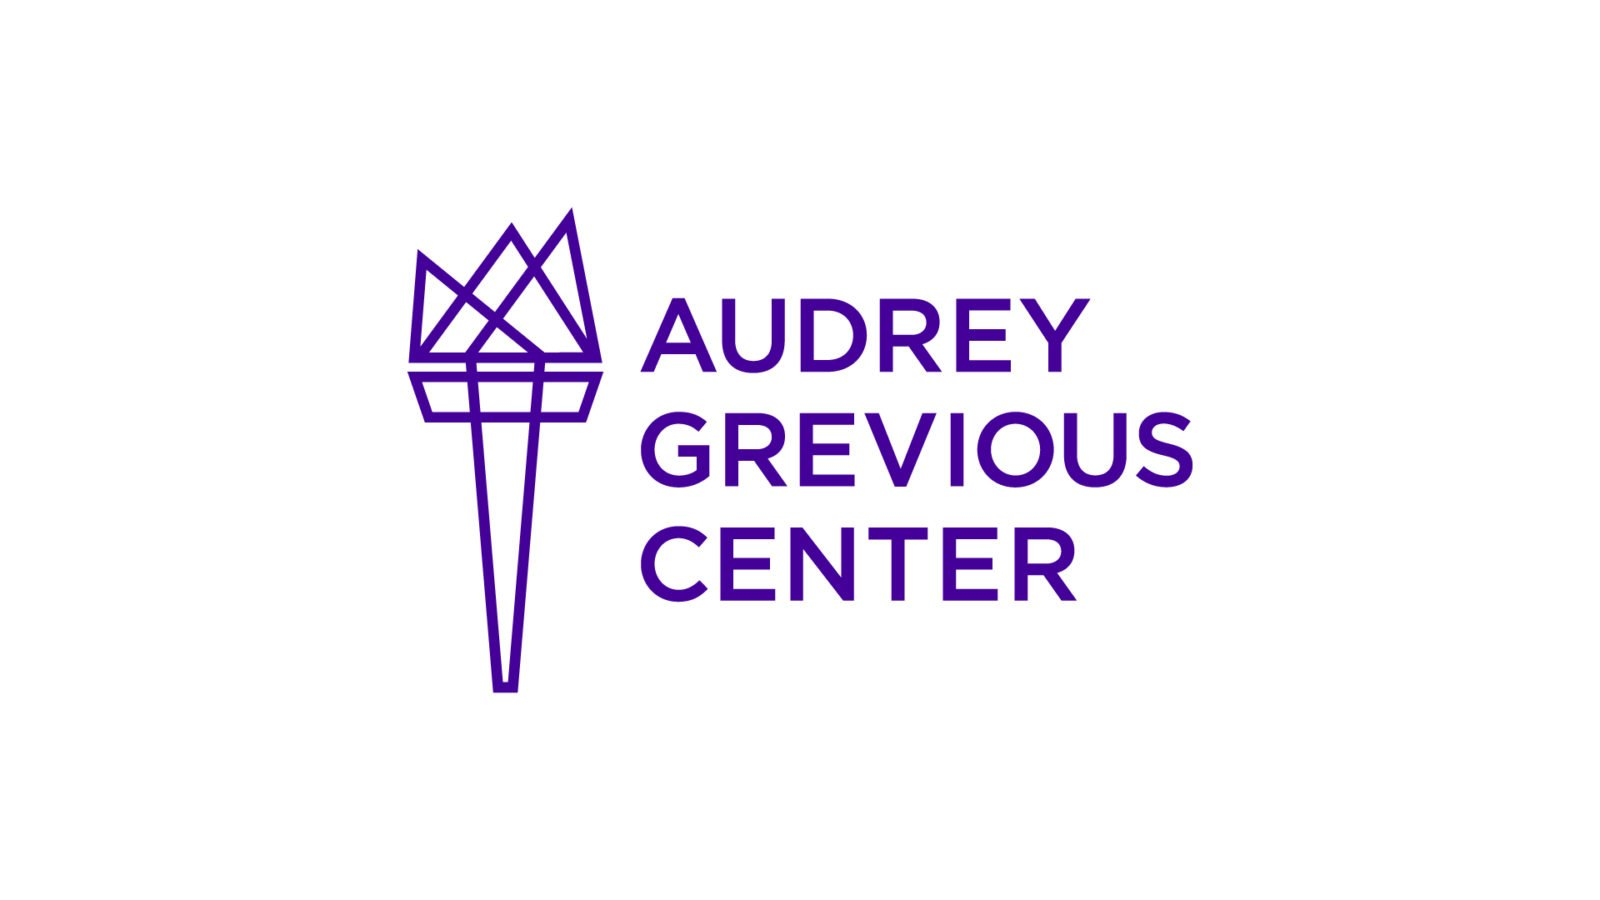 Logo for the Audrey Grevious Center School